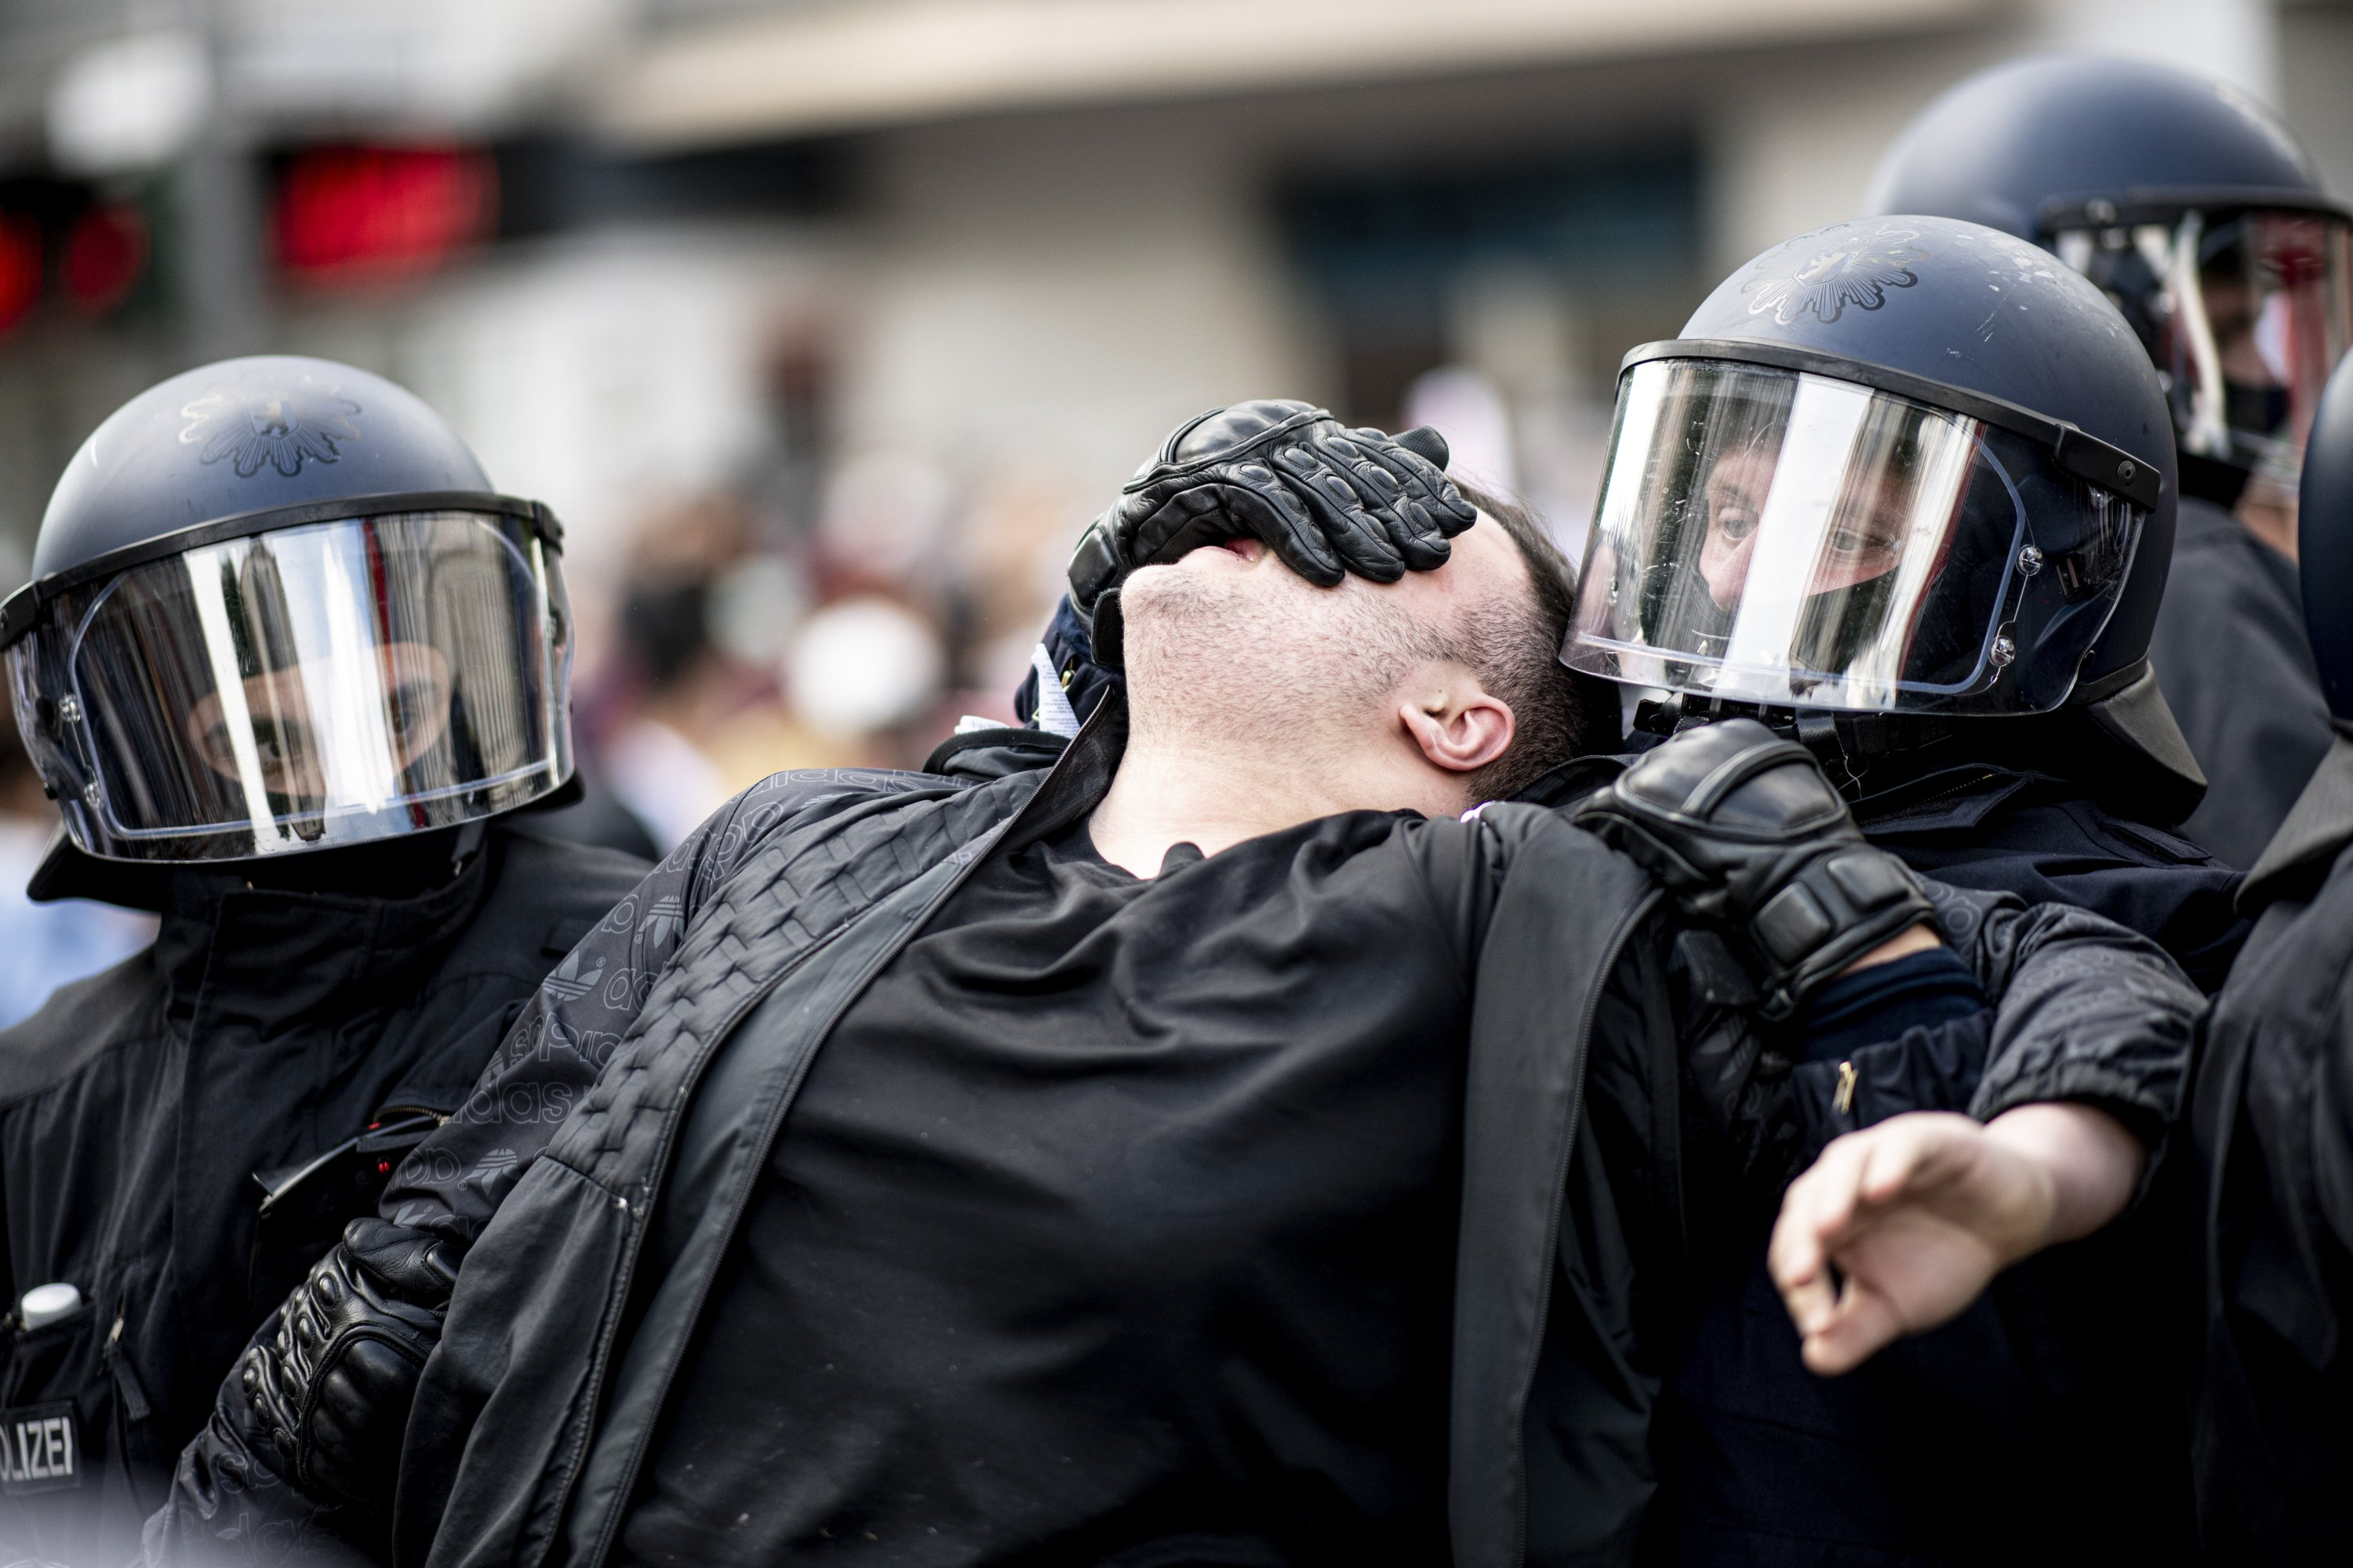 Police officers detain a participant in a Palestinian groups' rally against Israeli violence, in Neukoelln, Berlin, Germany, May 15, 2021. (AP Photo)